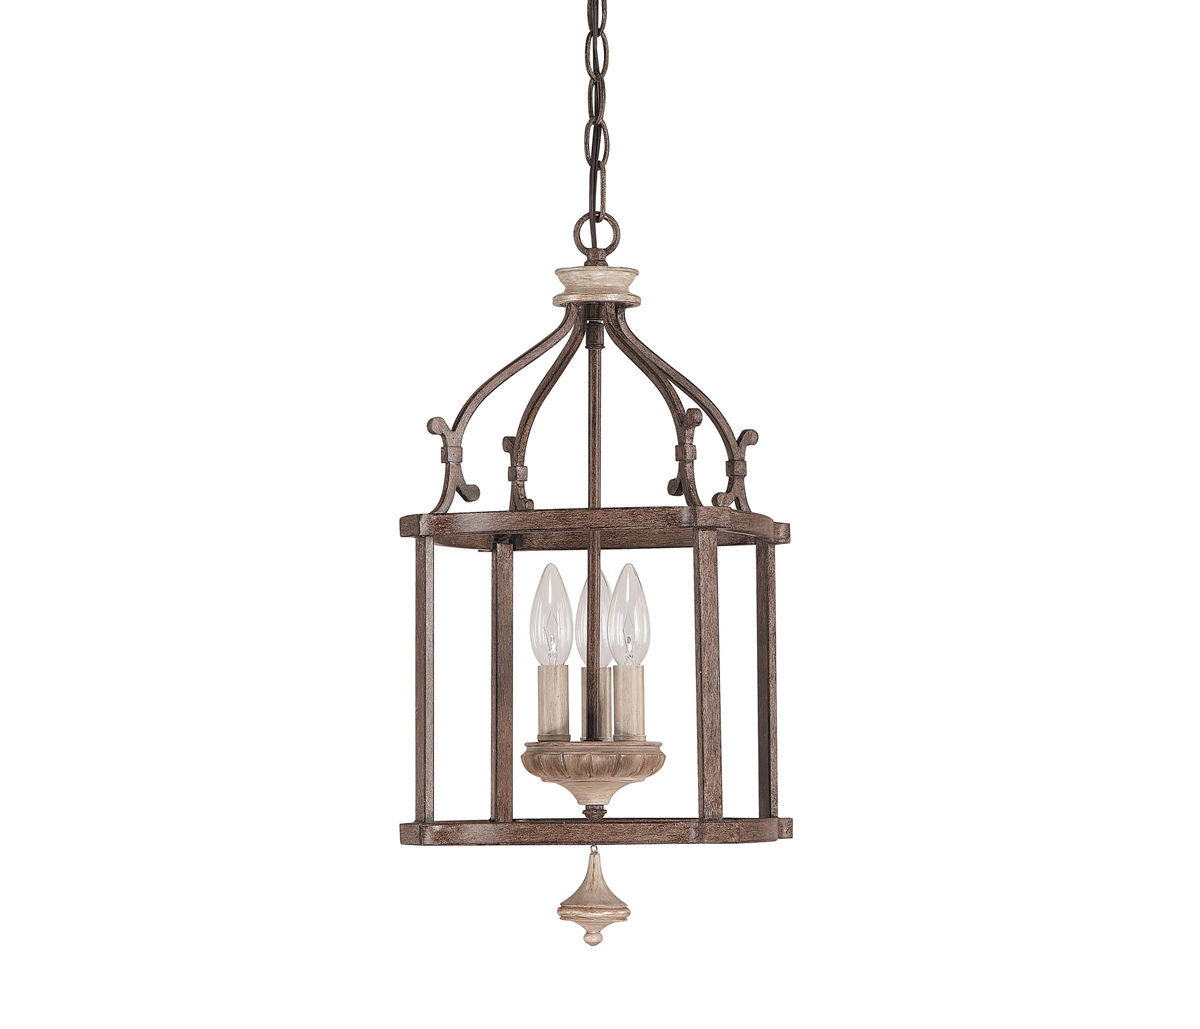 Small Foyer Lanterns : Capital lighting chateau light foyer fixture